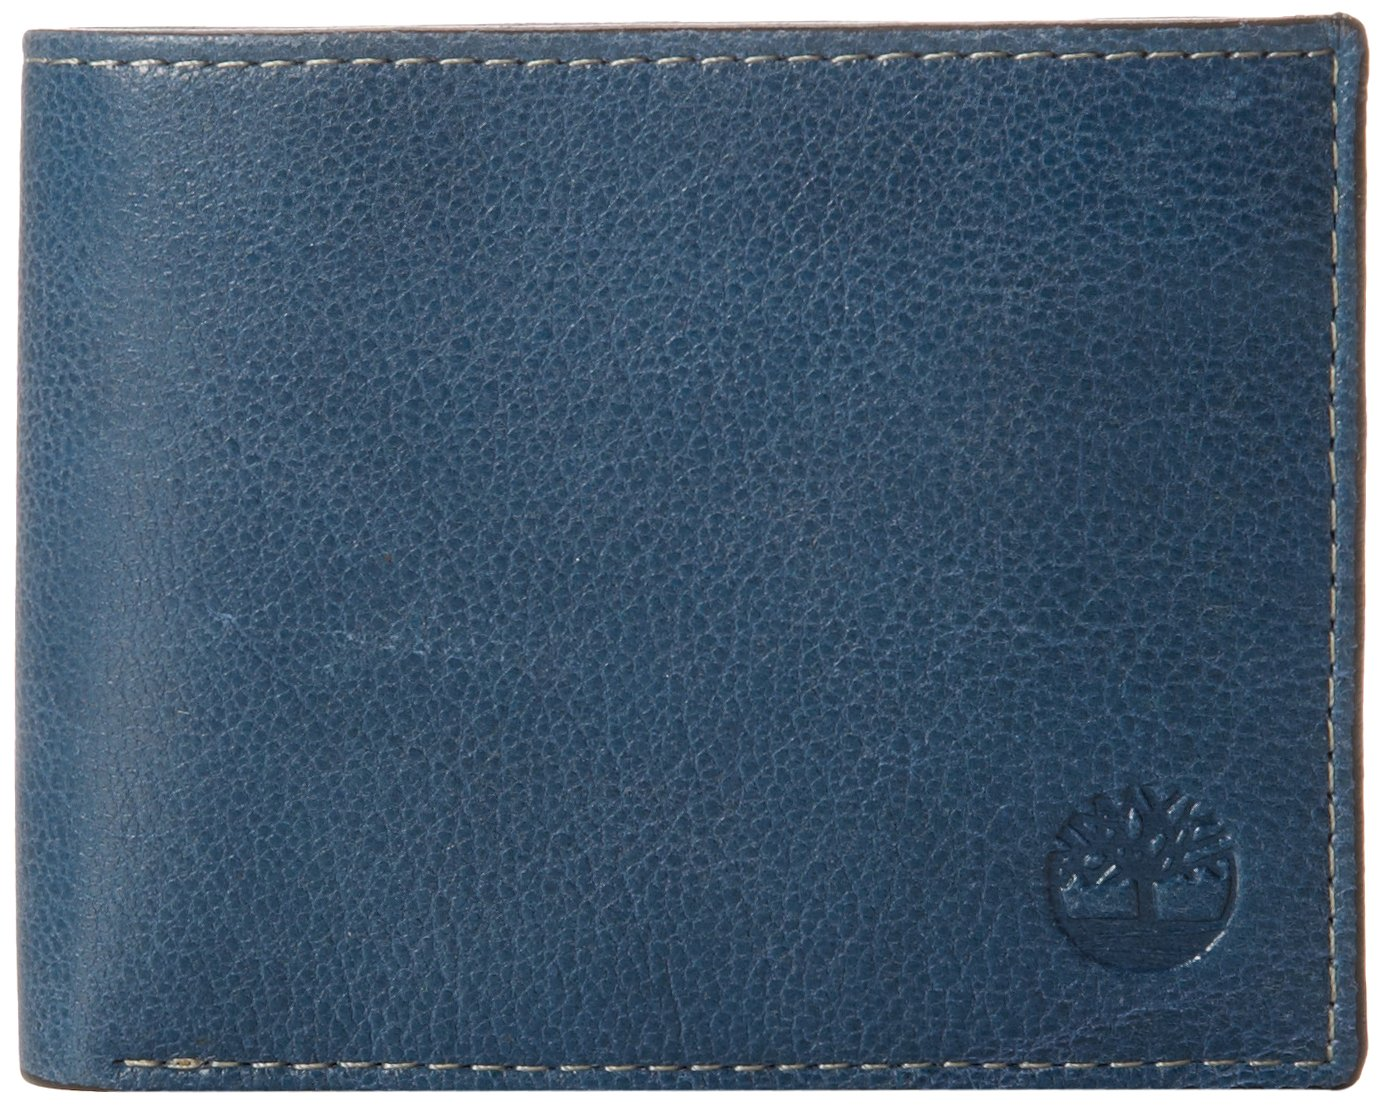 Timberland Men's Fine Break Passcase, Navy, One Size by Timberland (Image #1)